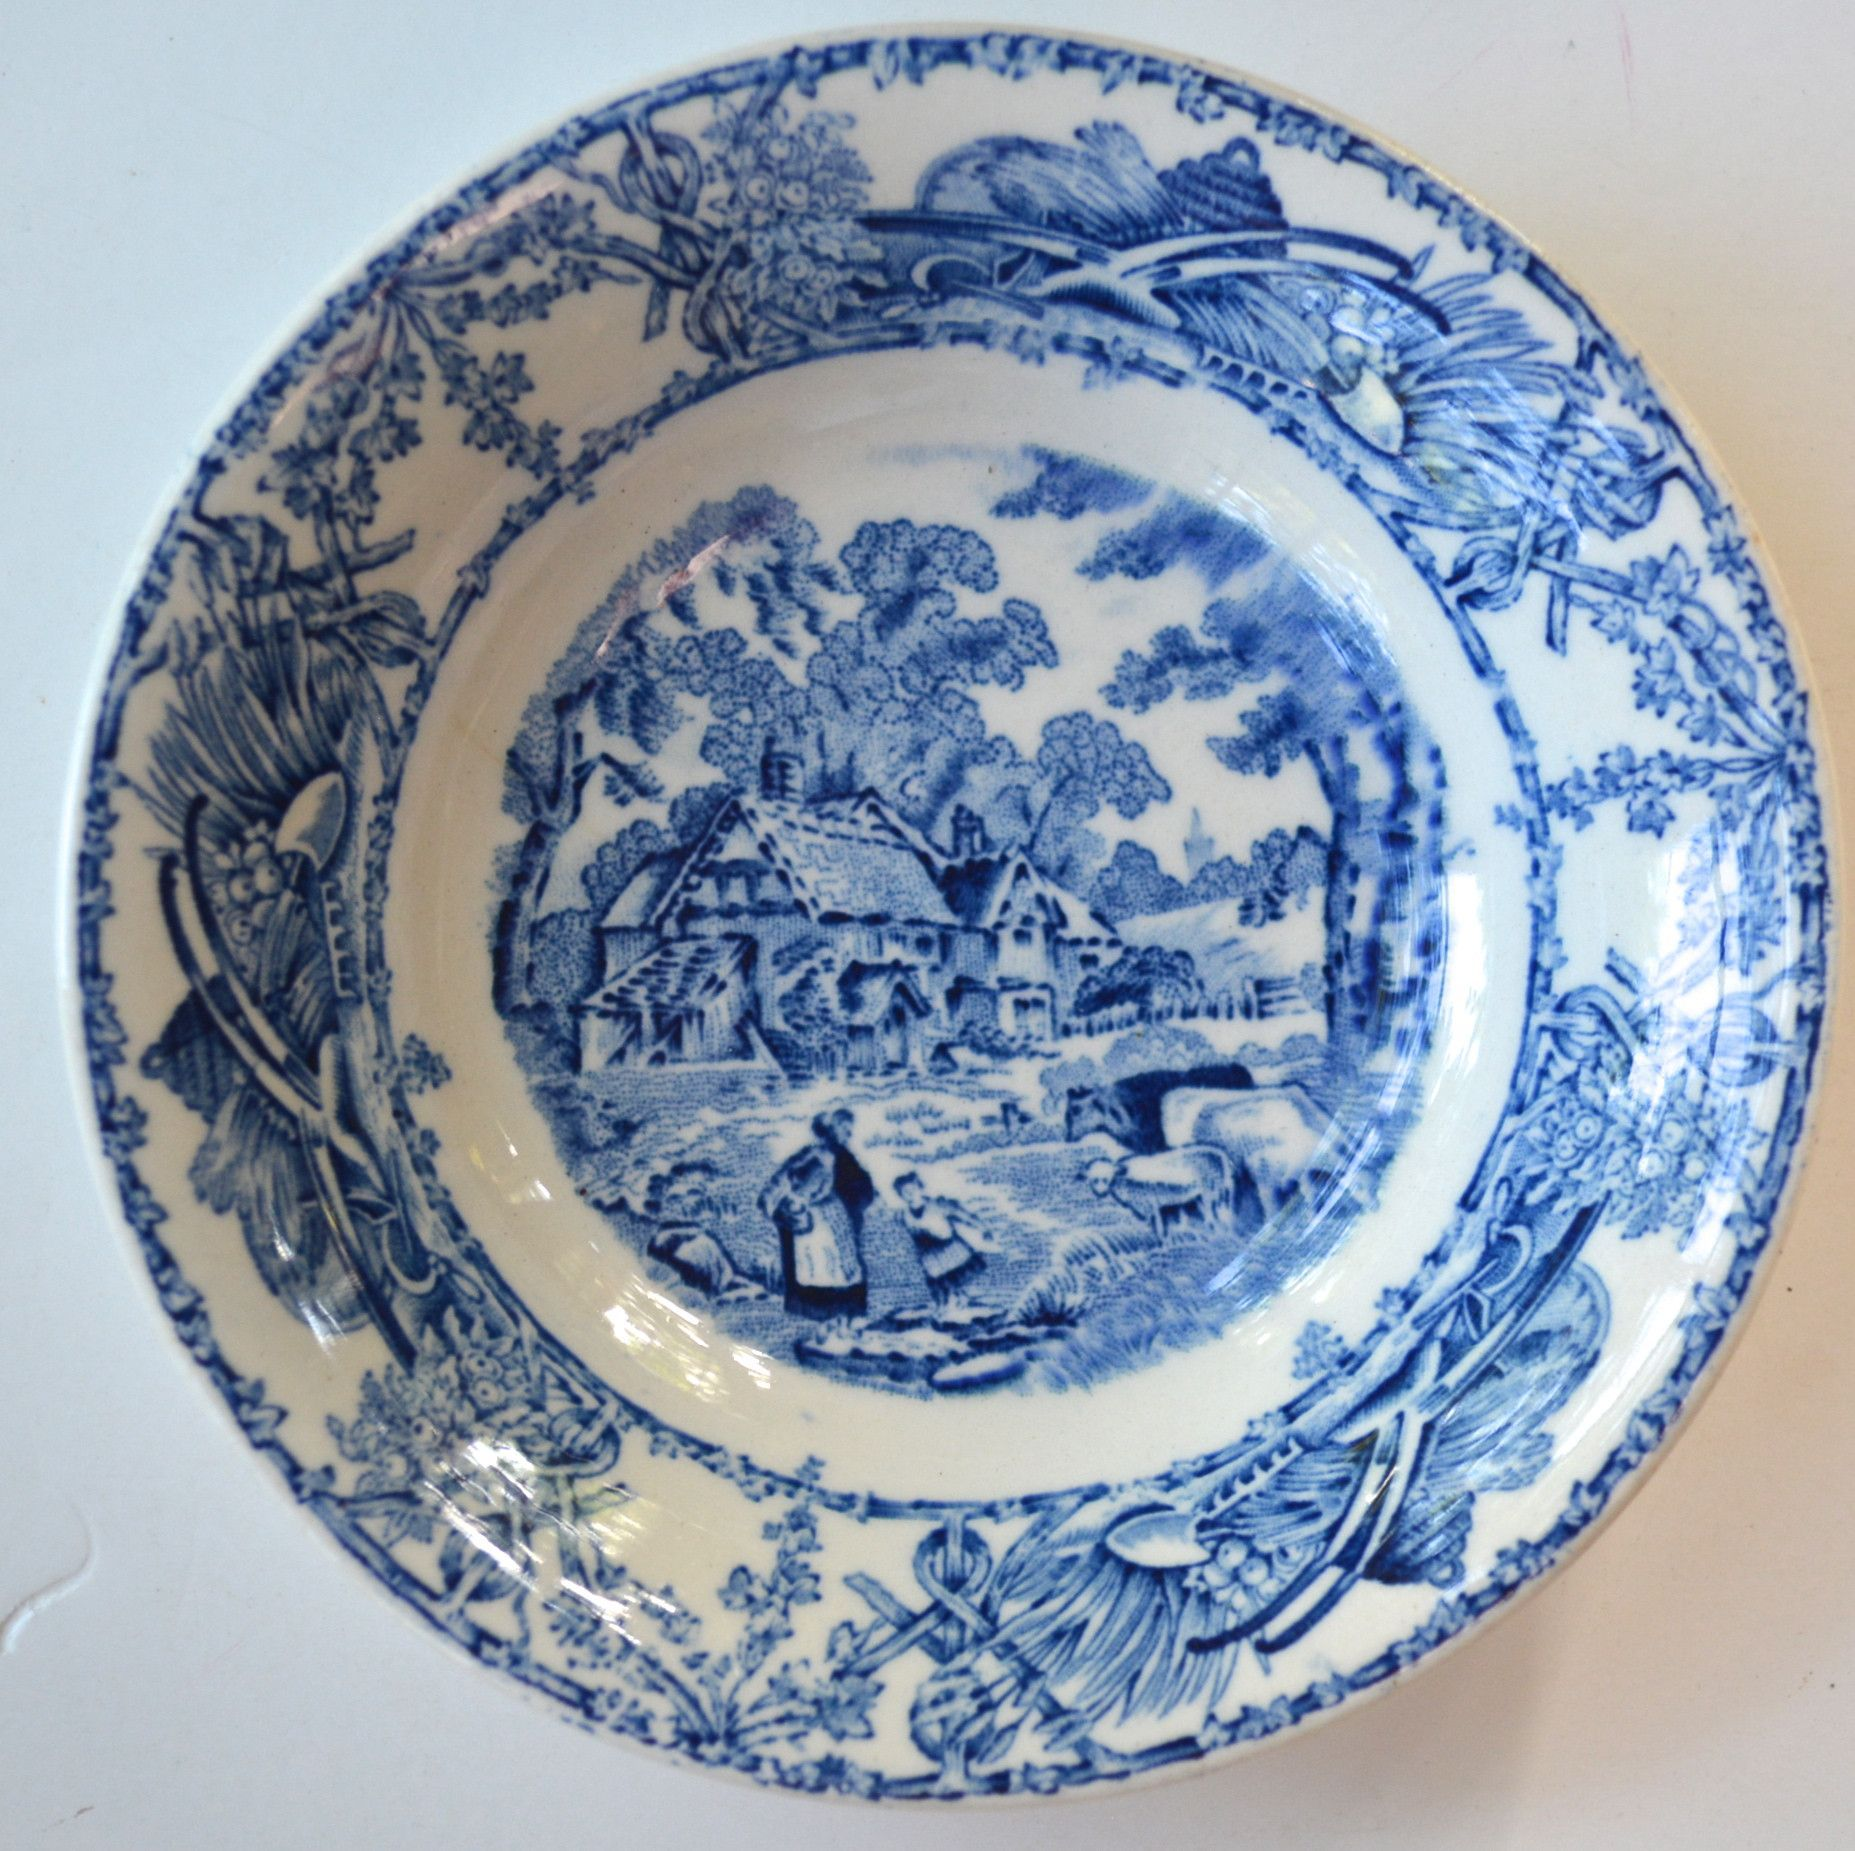 Blue Toile TRANSFERWARE Bowl Candy Dish Trinket Dish Mother Child Cows Lamb Farm  sc 1 st  Pinterest & Blue Toile TRANSFERWARE Bowl Candy Dish Trinket Dish Mother Child ...